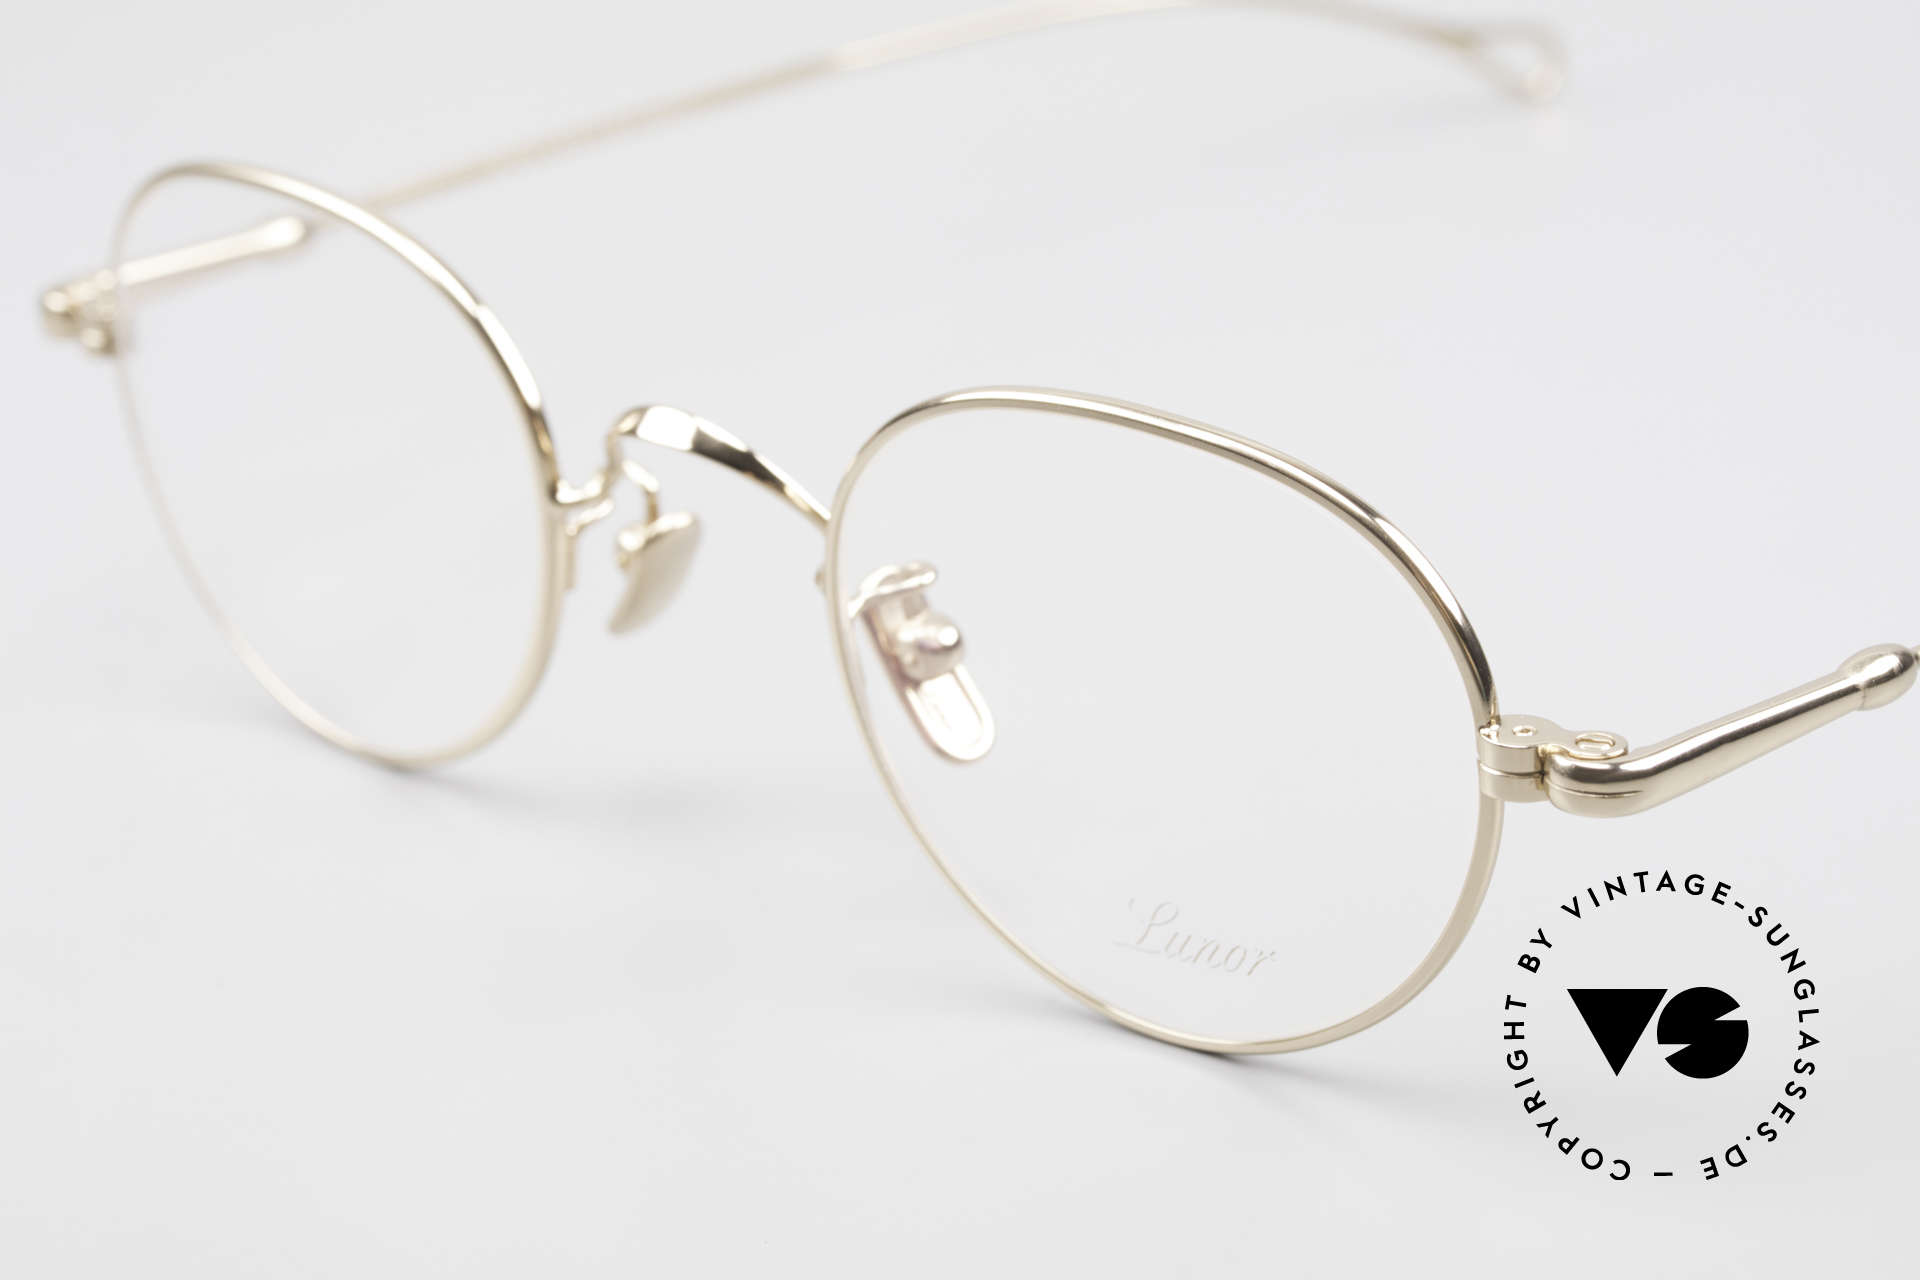 Lunor V 108 Gold Plated Glasses Titanium, from the 2011's collection, but in a well-known quality, Made for Men